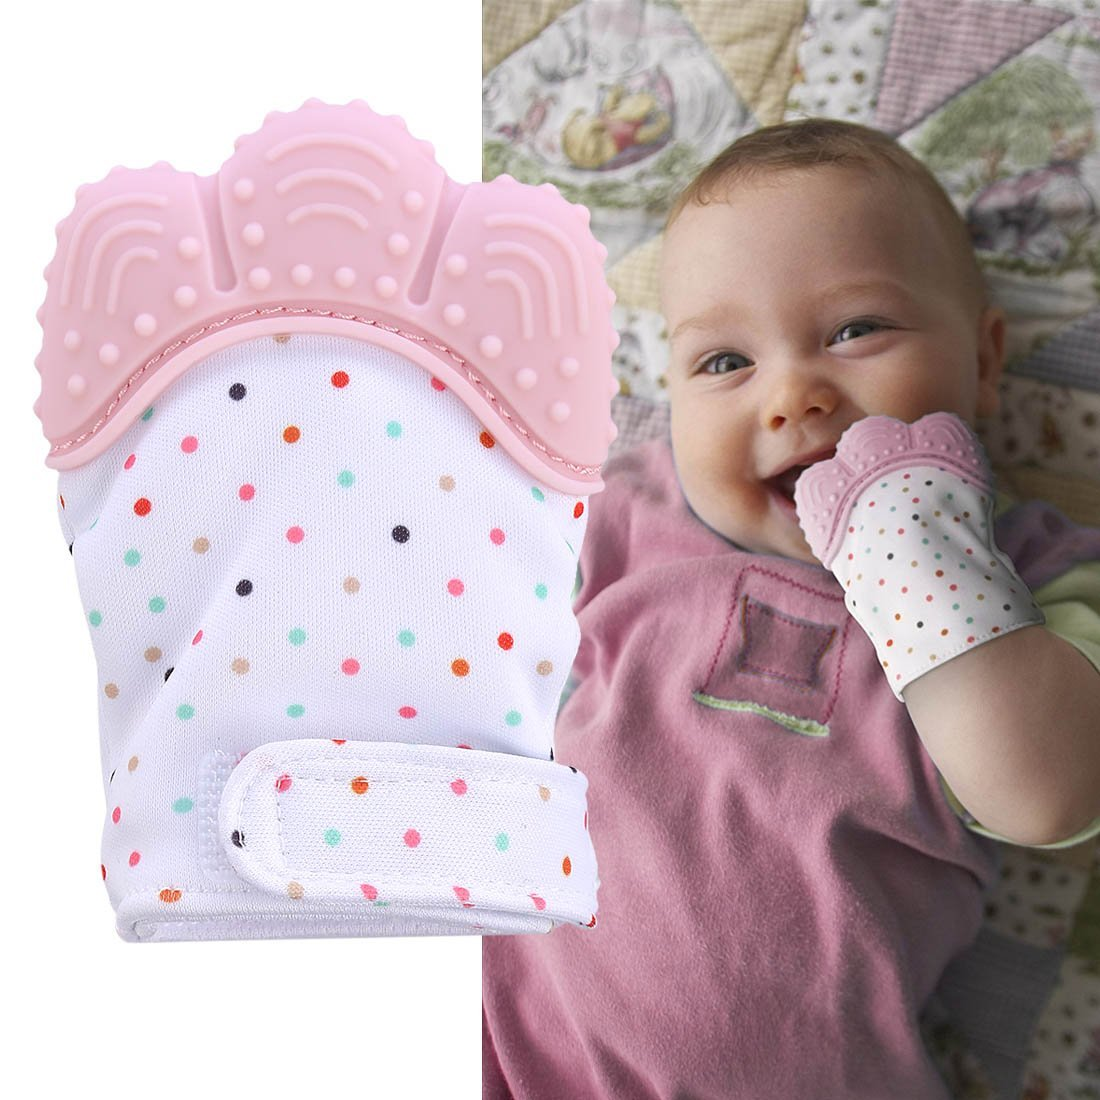 Baby Silicone Teething Mitten Self Soothing Teether Glove